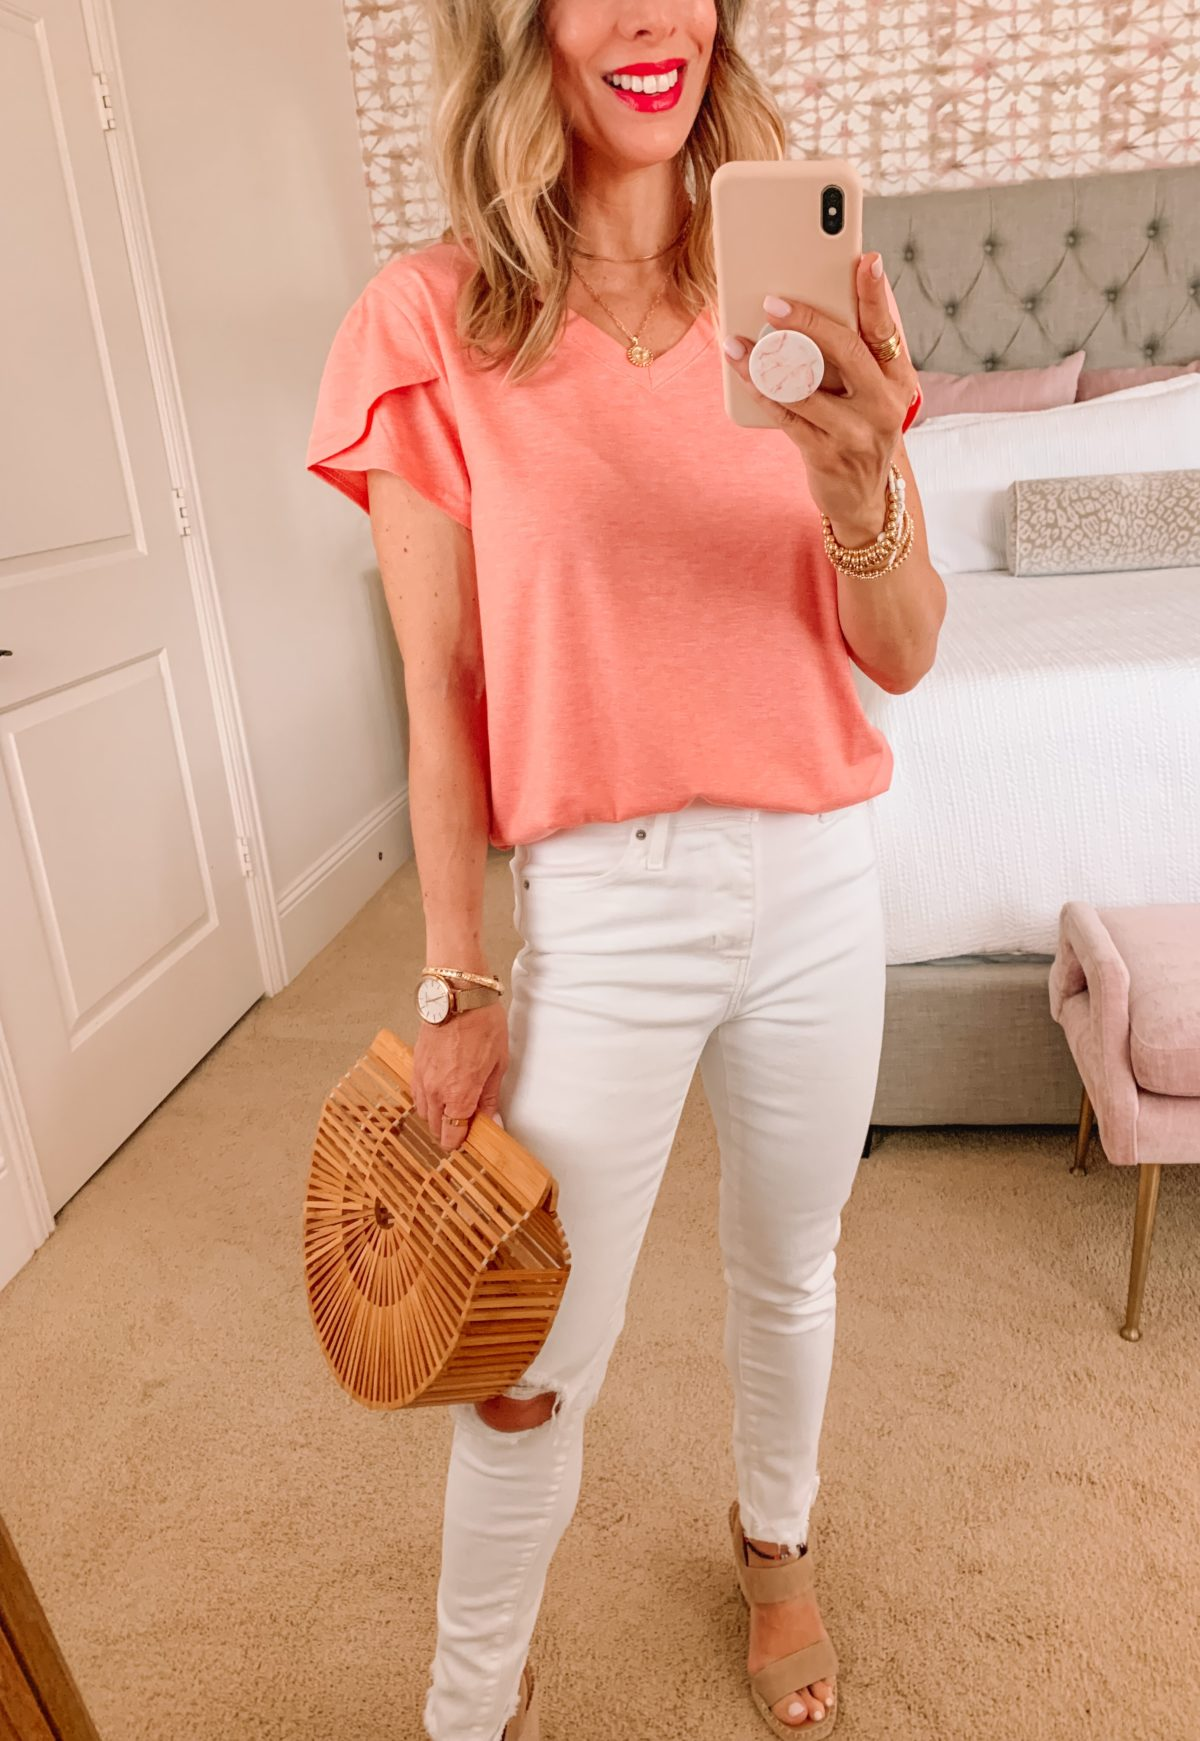 Amazon Fashion Faves, Petal Sleeve Tee, white jeans, Wedges, Clutch